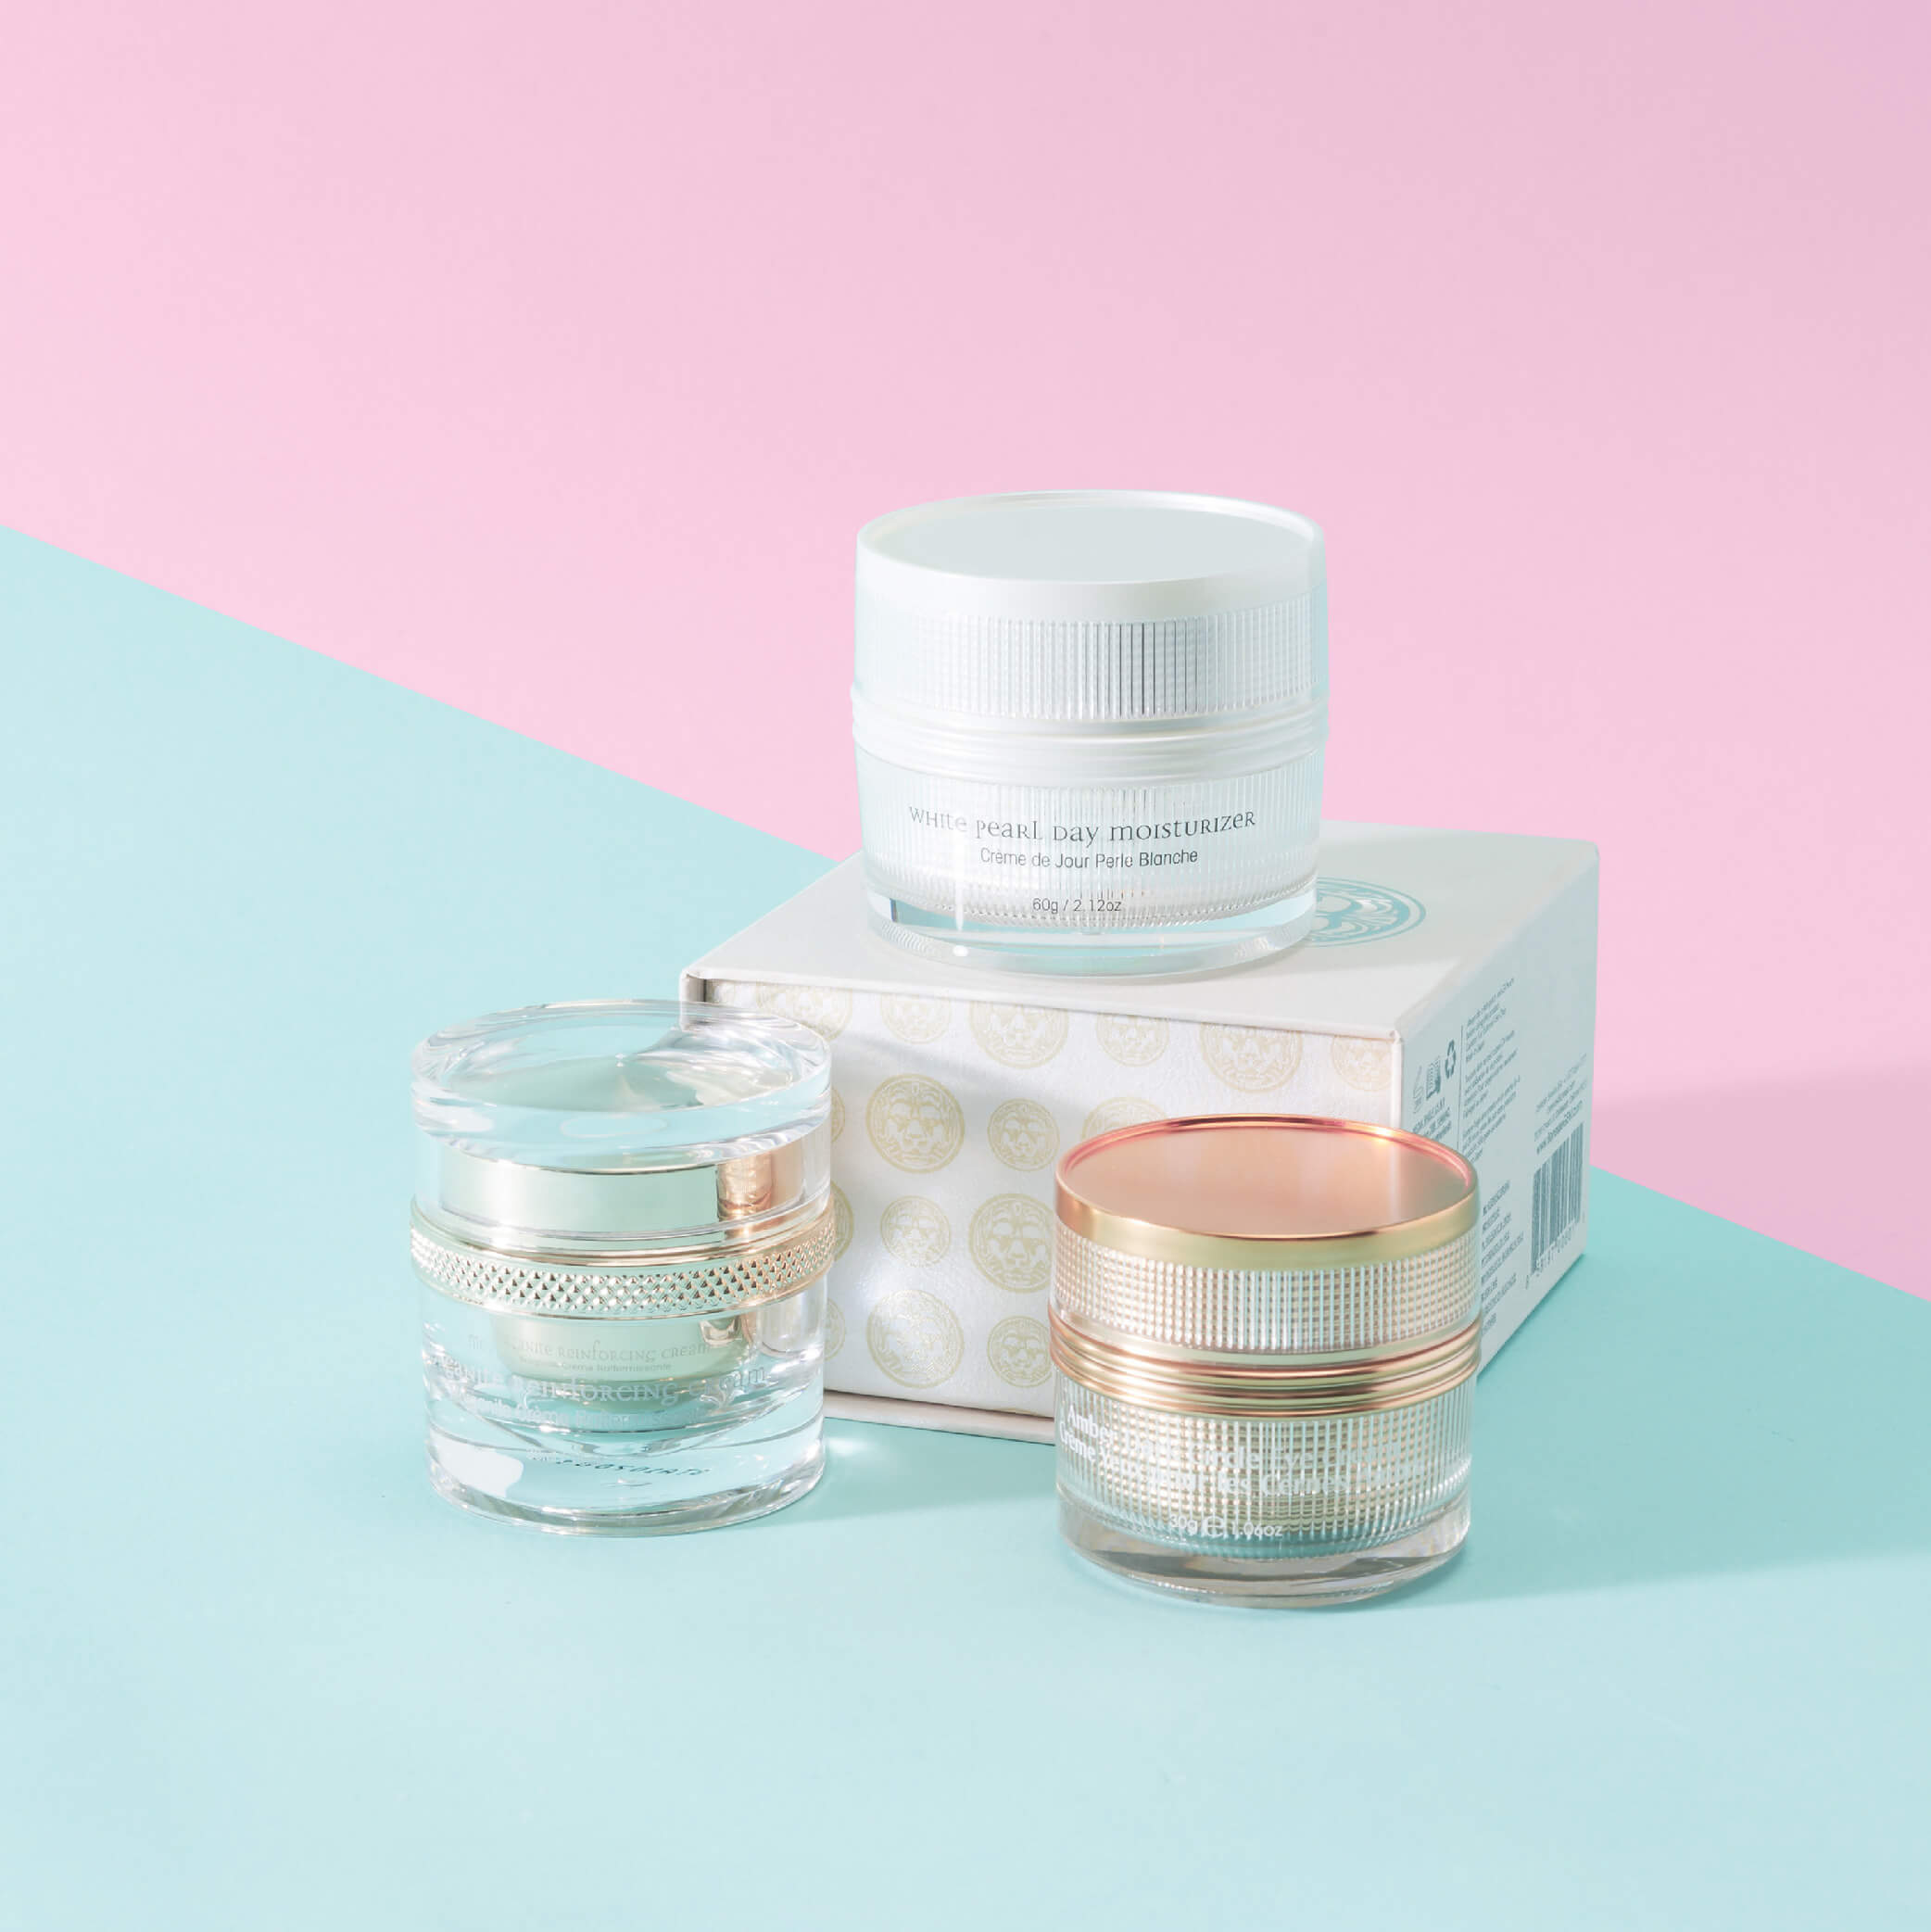 Lionesse skincare summer products